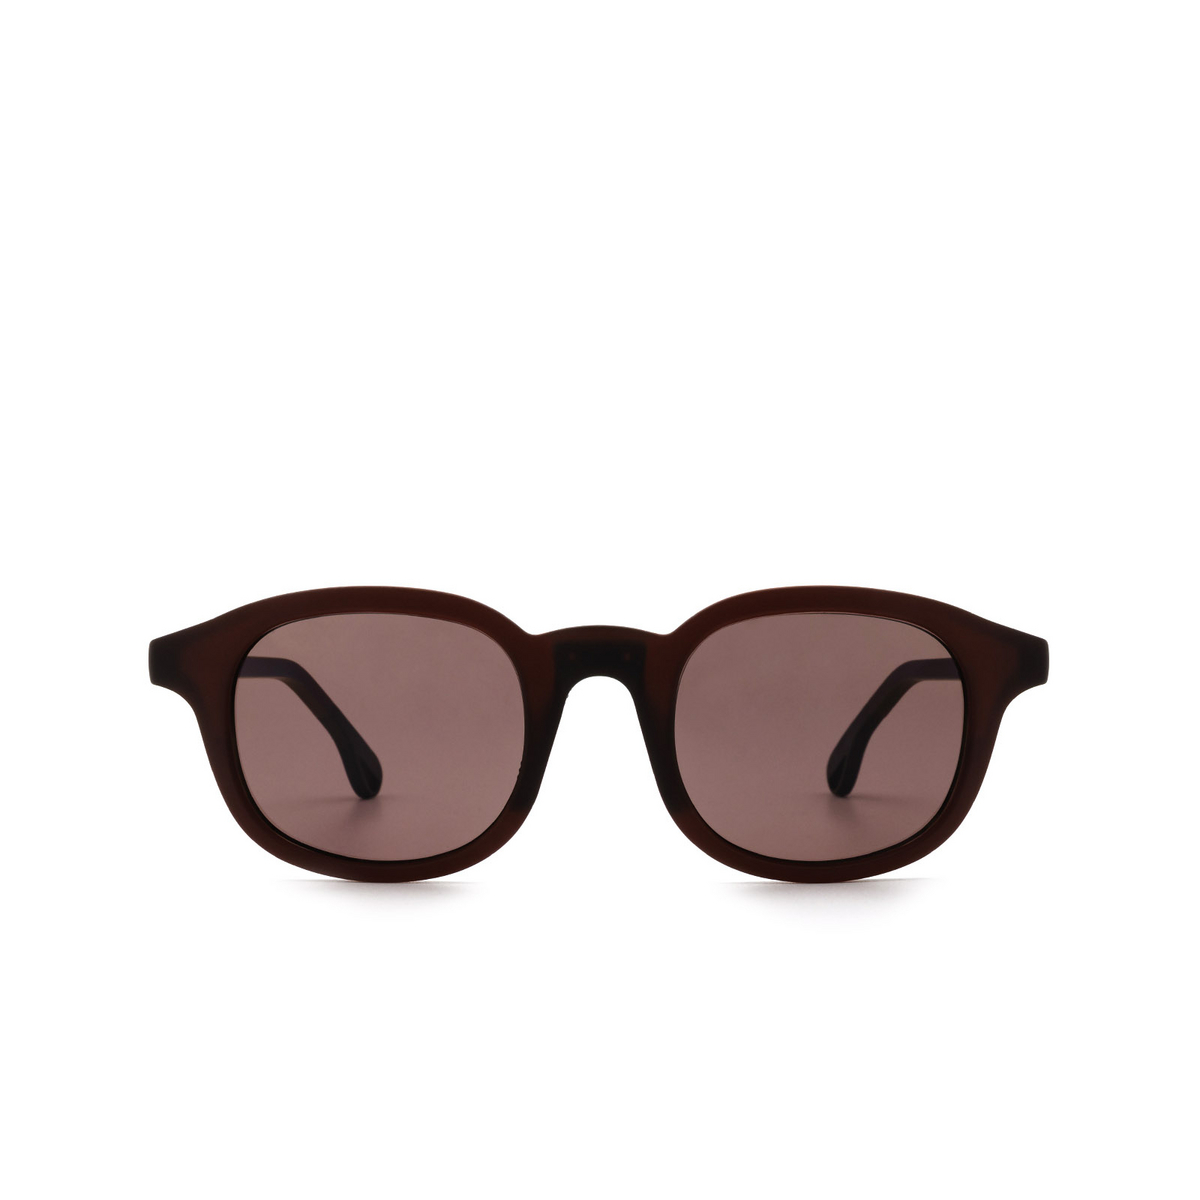 Chimi® Square Sunglasses: 01 ACTIVE color Red - front view.